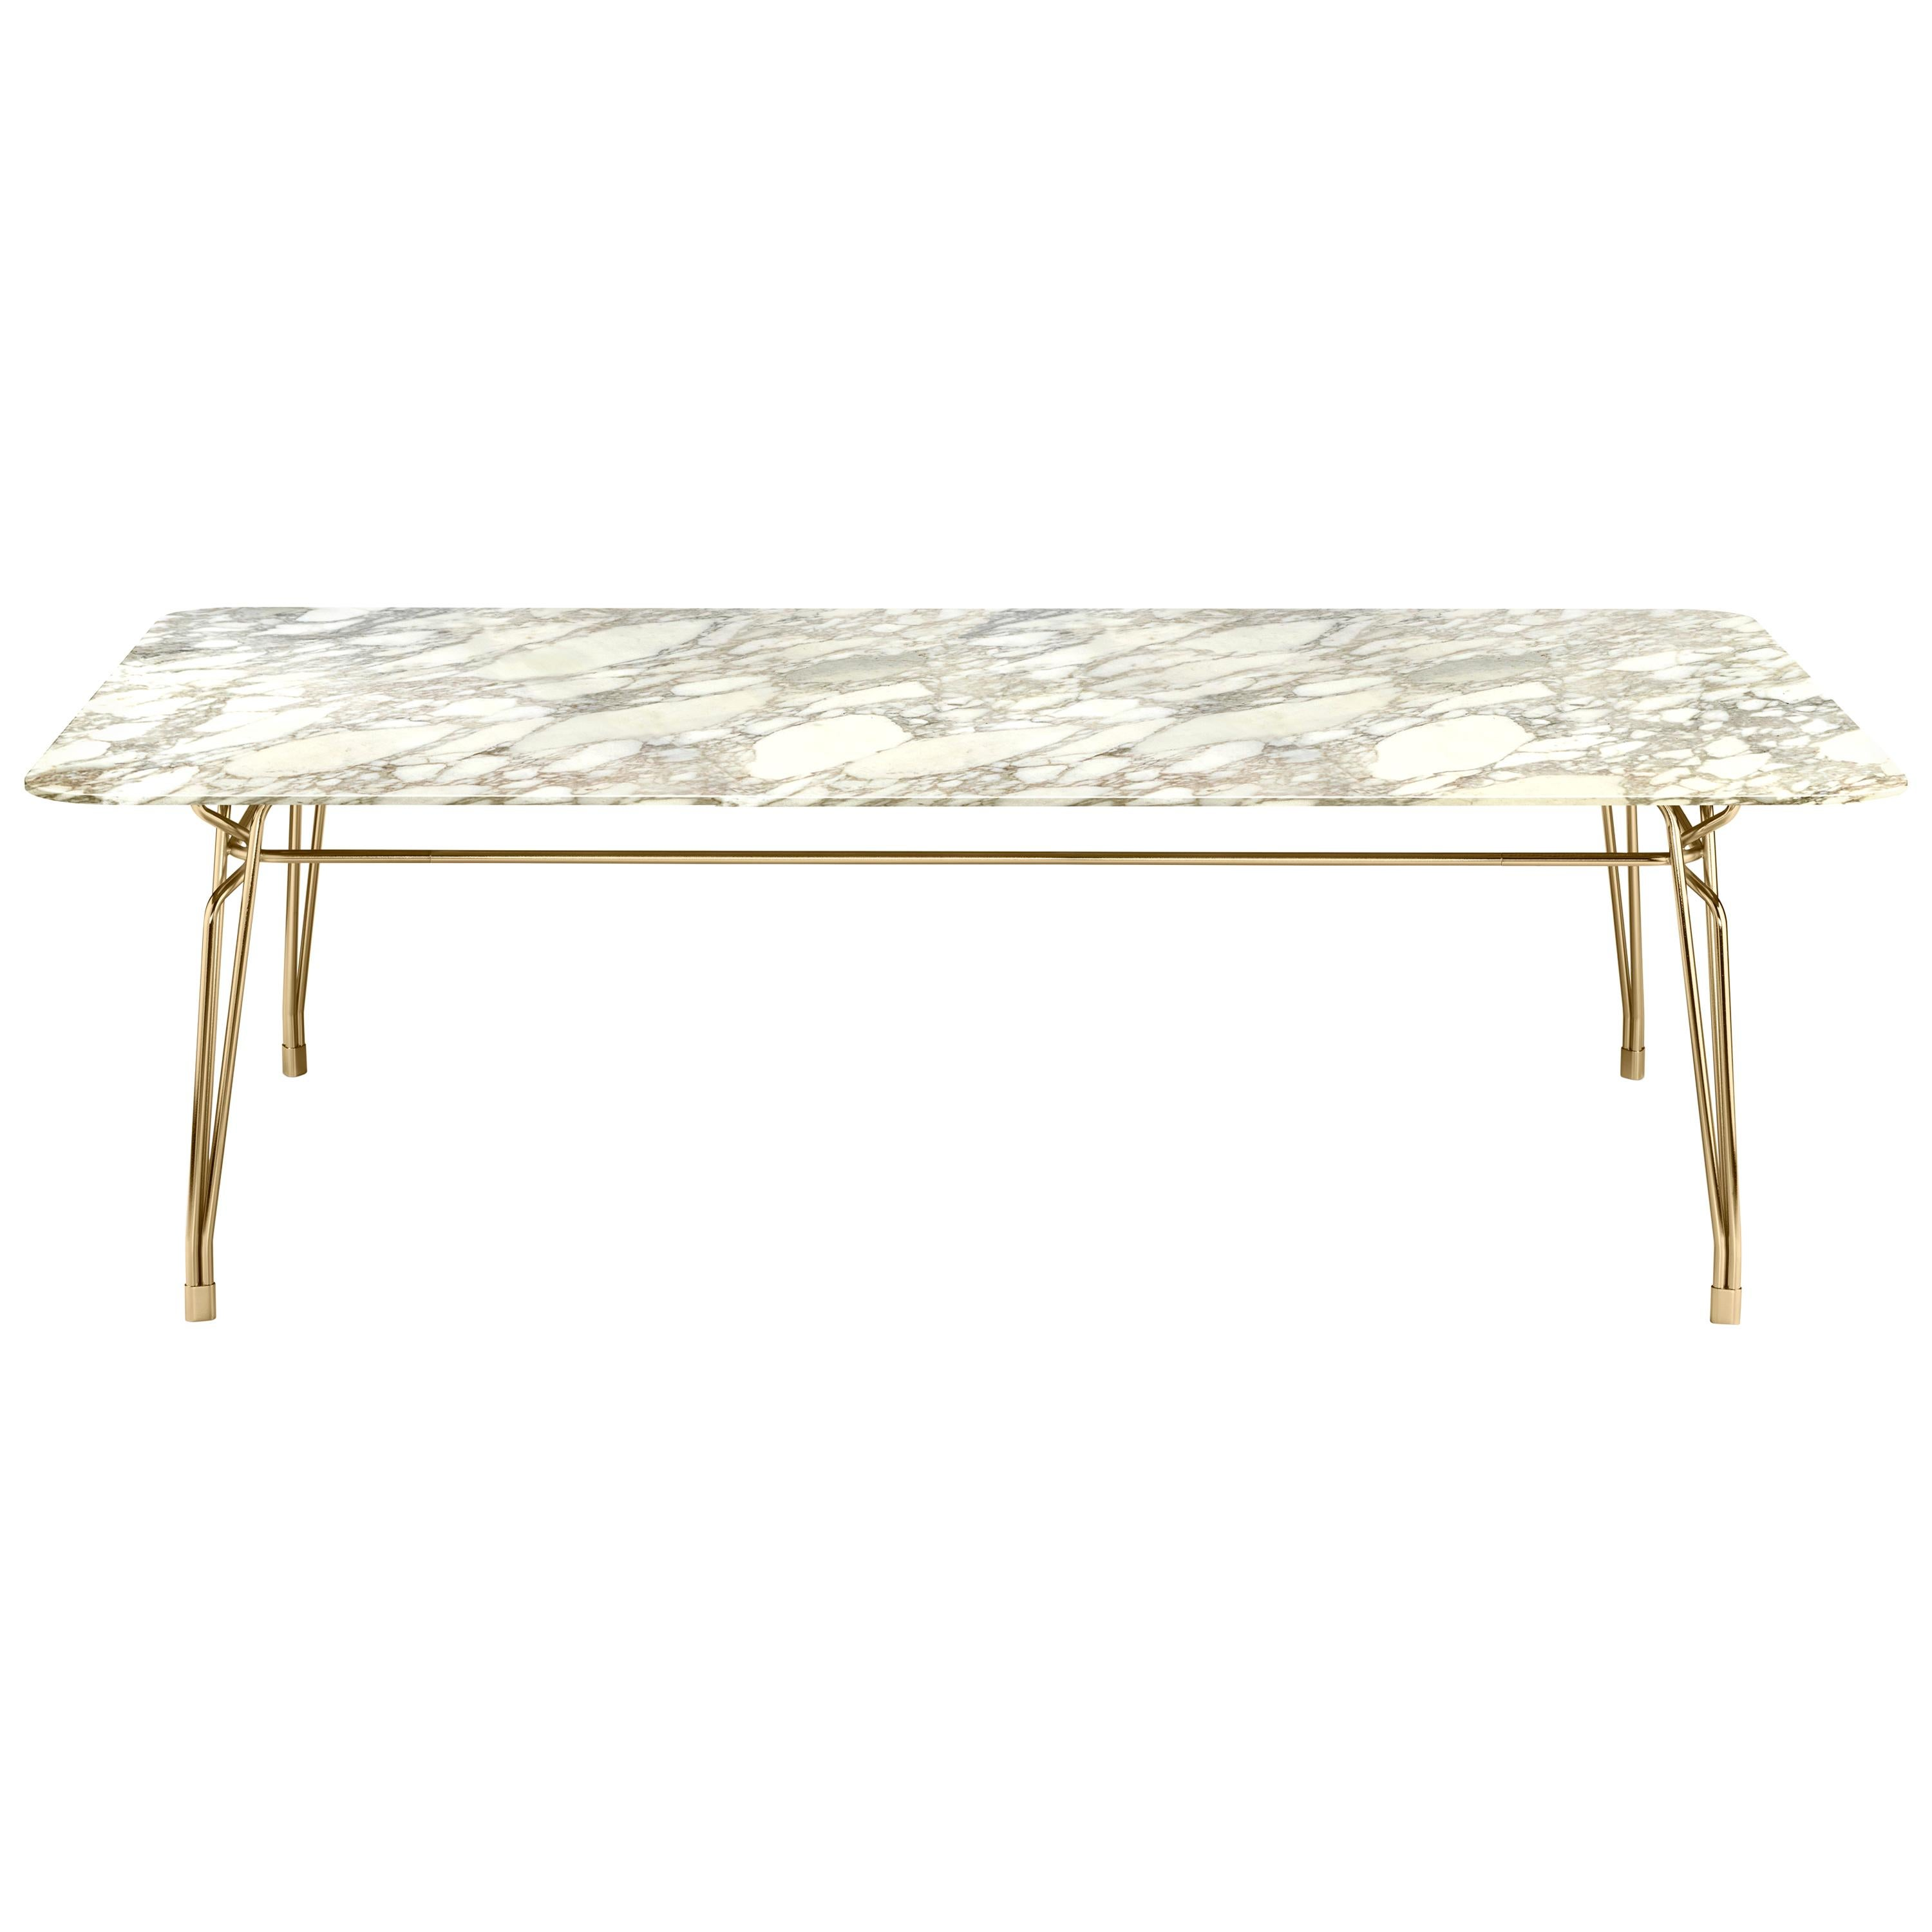 Botany Dining Table in Calacatta Gold Marble Top with Polished Brass Legs